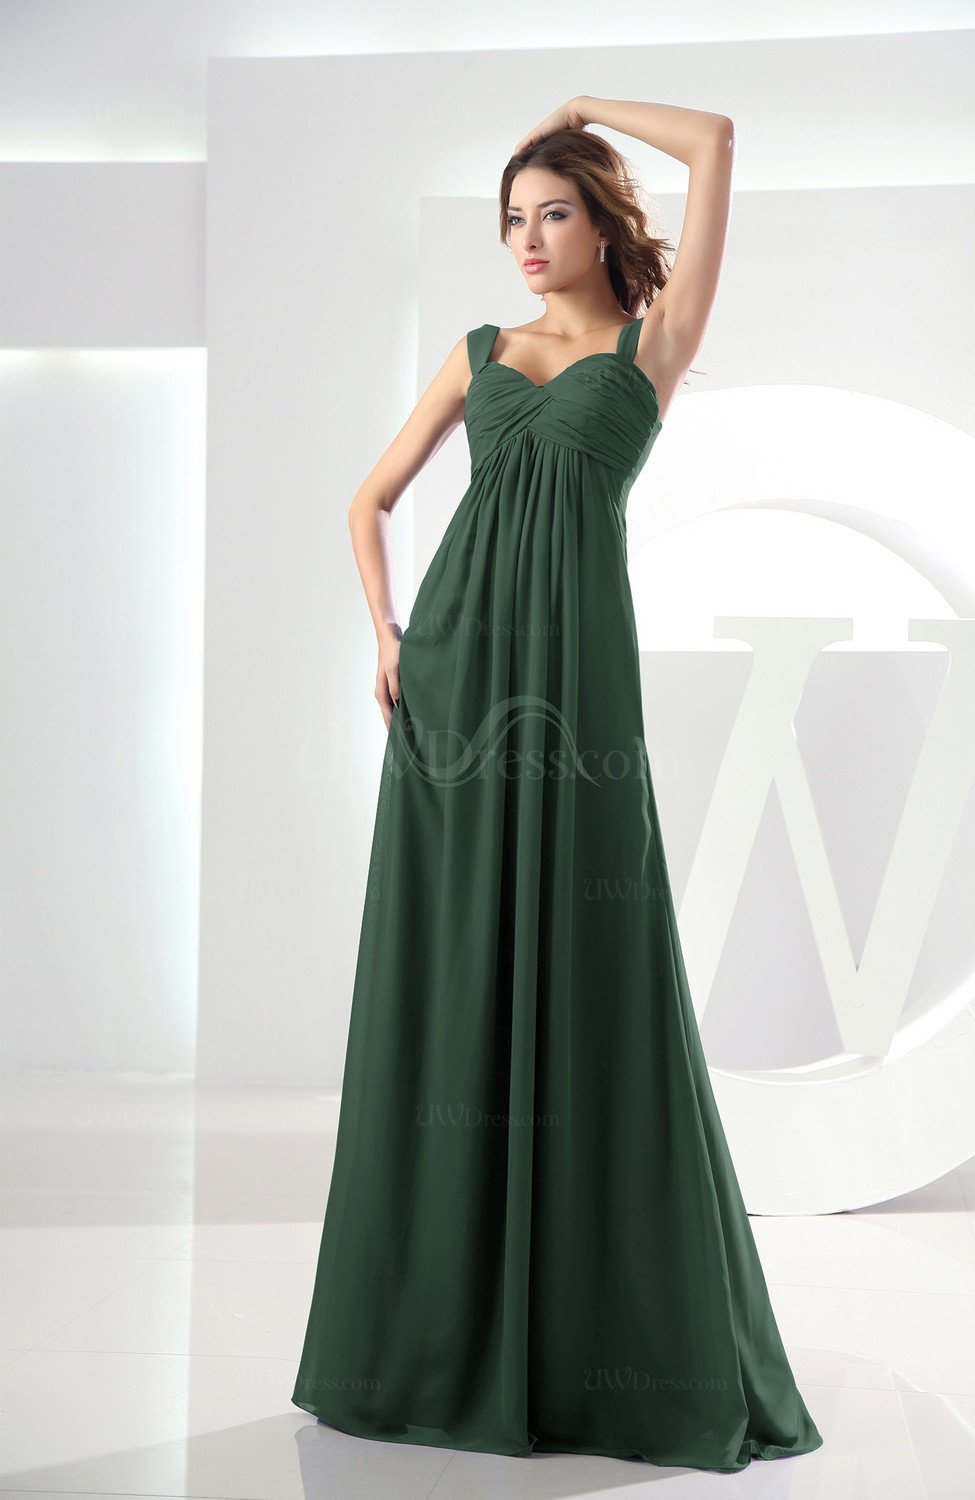 Plus size bridesmaid dresses uwdress hunter green casual empire zipper chiffon floor length ruching bridesmaid dresses ombrellifo Gallery